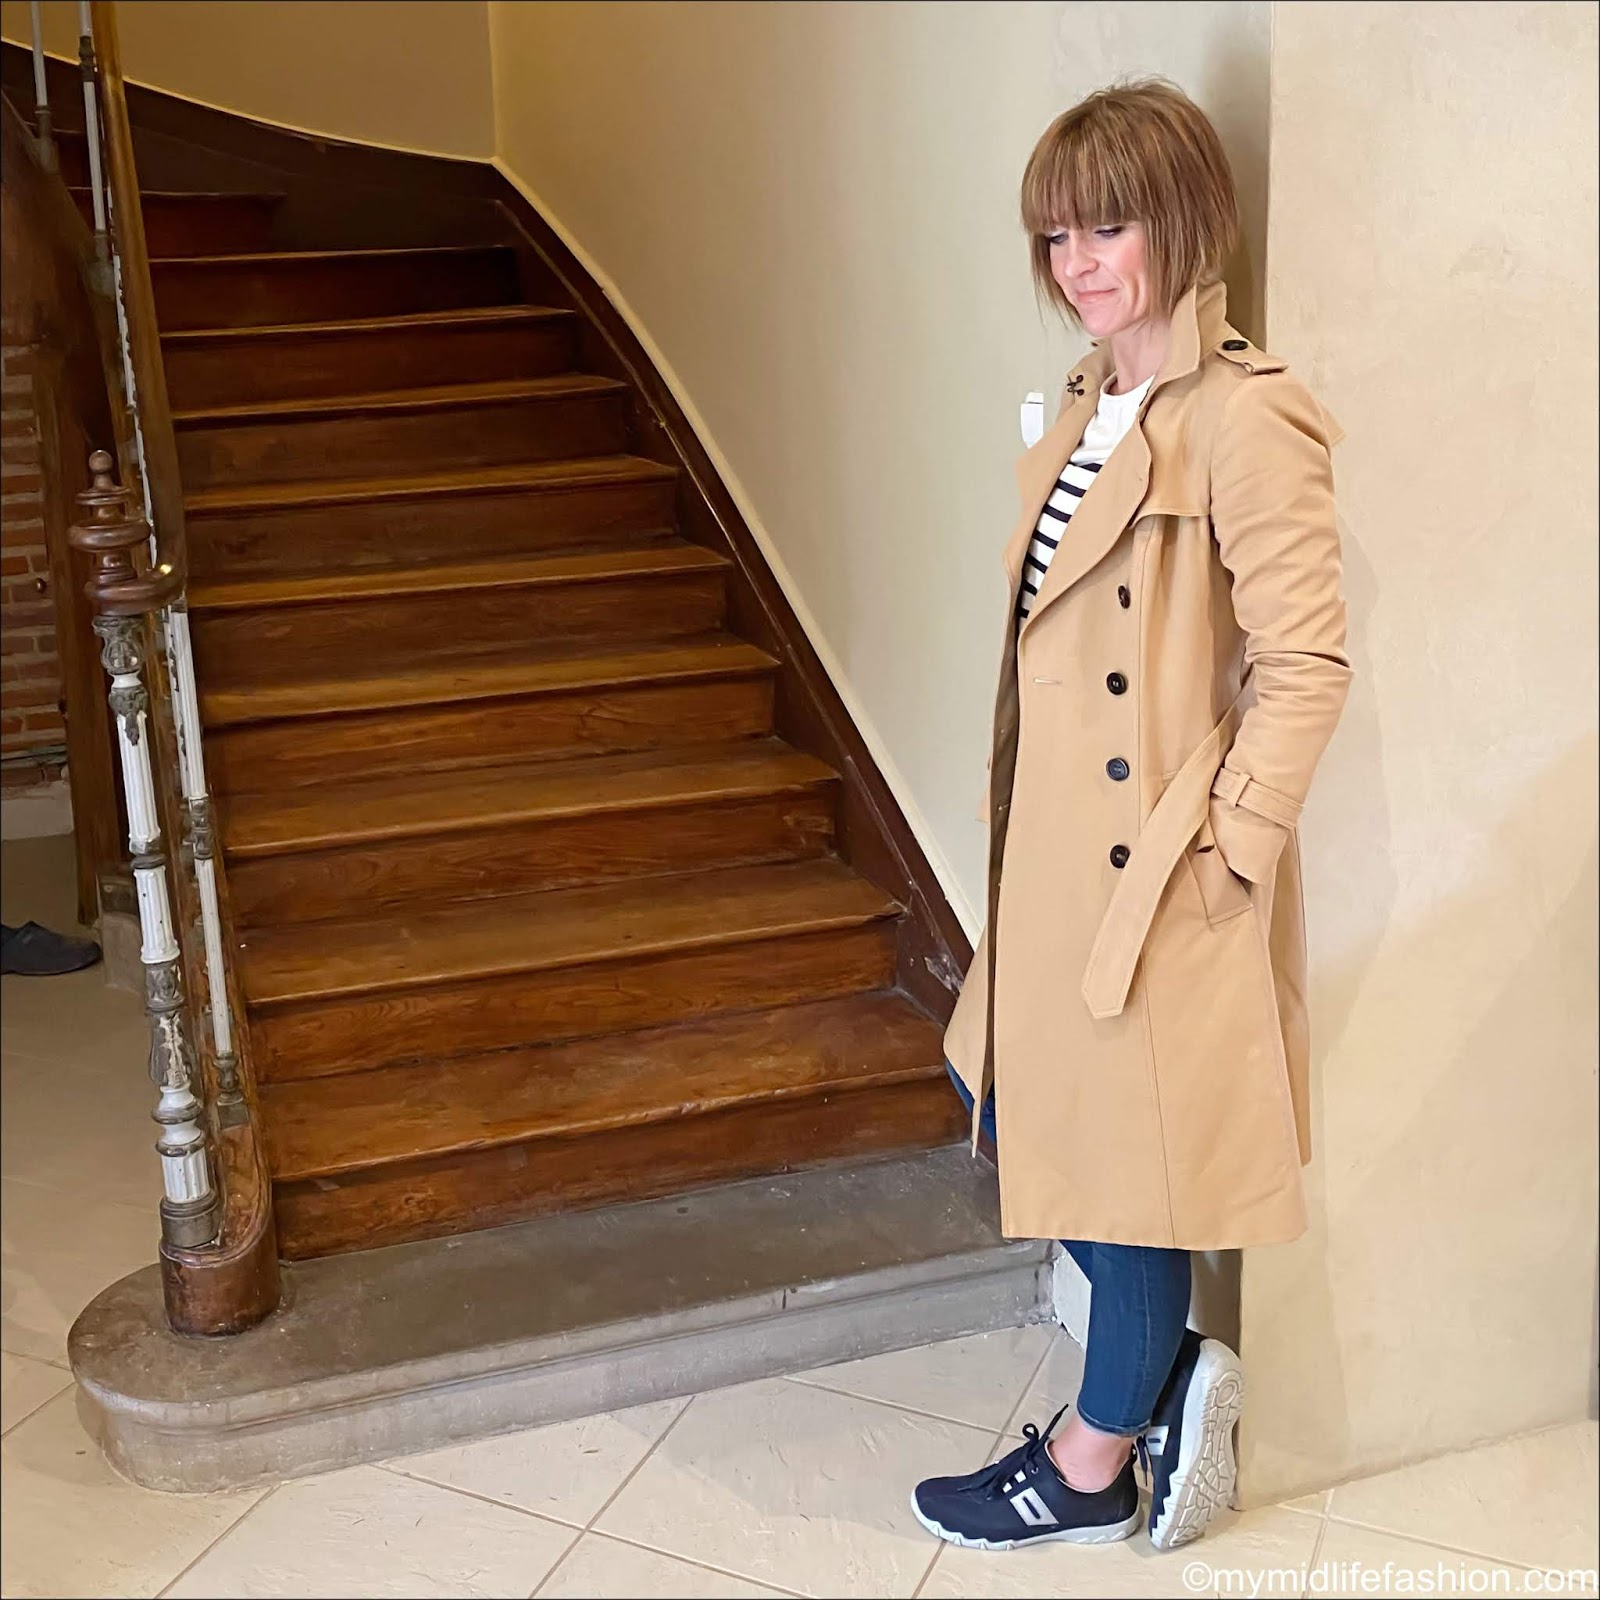 my midlife fashion, Burberry trench coat, sezane Breton loin top, j crew 8 inch toothpick jeans, hotter leanne trainers, Gucci double GG logo belt